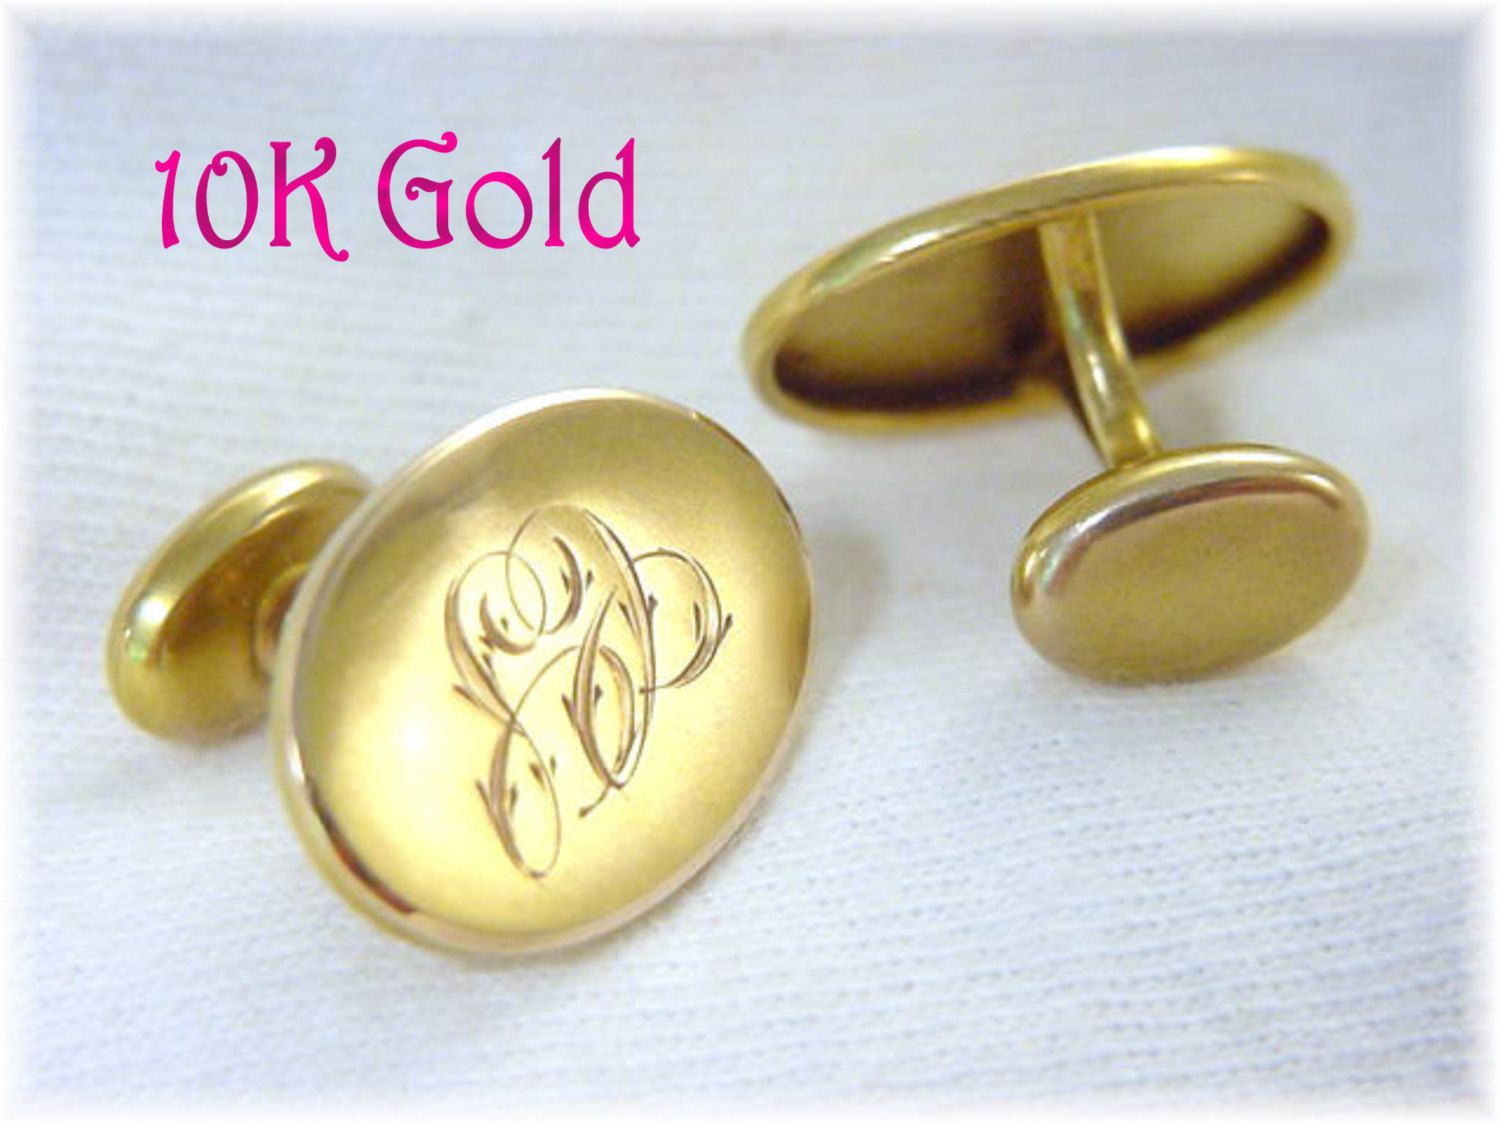 10K Gold - Art Nouveau Oval Monogrammed Initial Cuff Links Cufflinks - Script Engraved C S - Gift Boxed -  Estate Antique - FREE SHIPPING